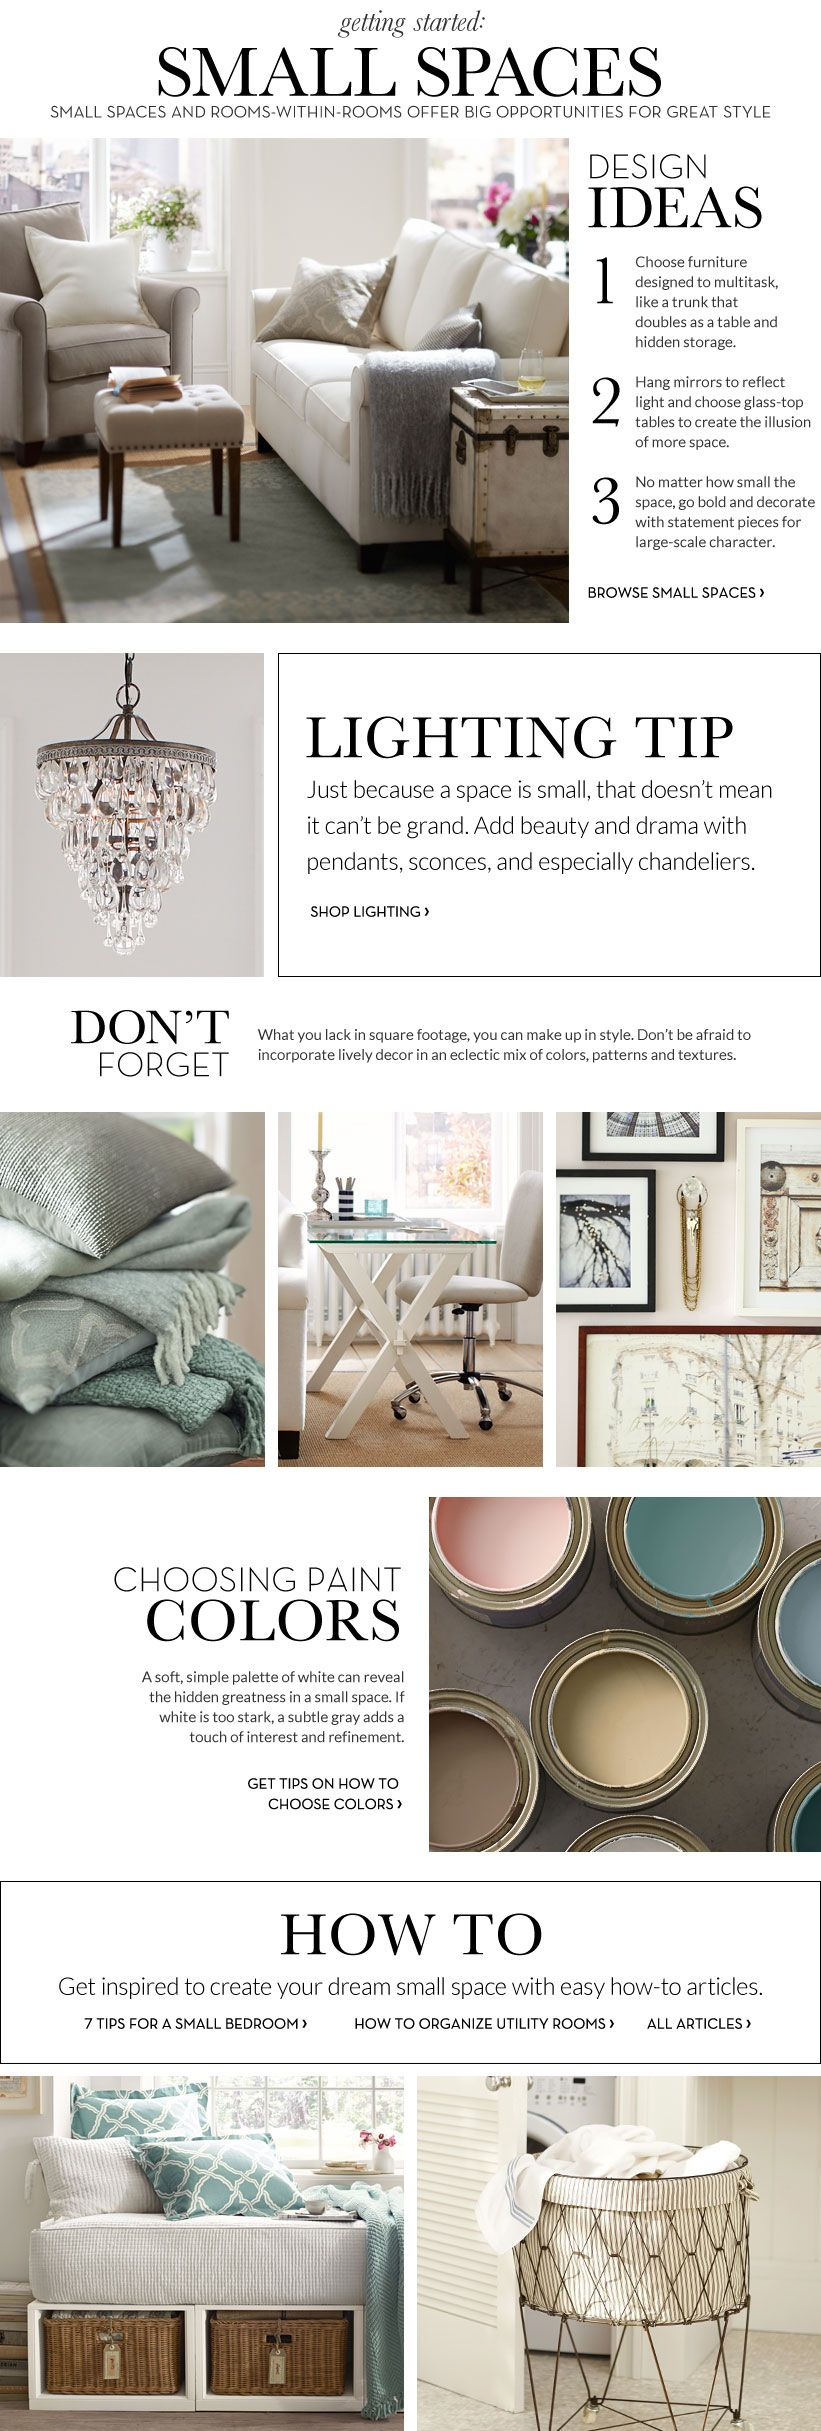 small spaces inspiration u0026 how to decorate small spaces pottery